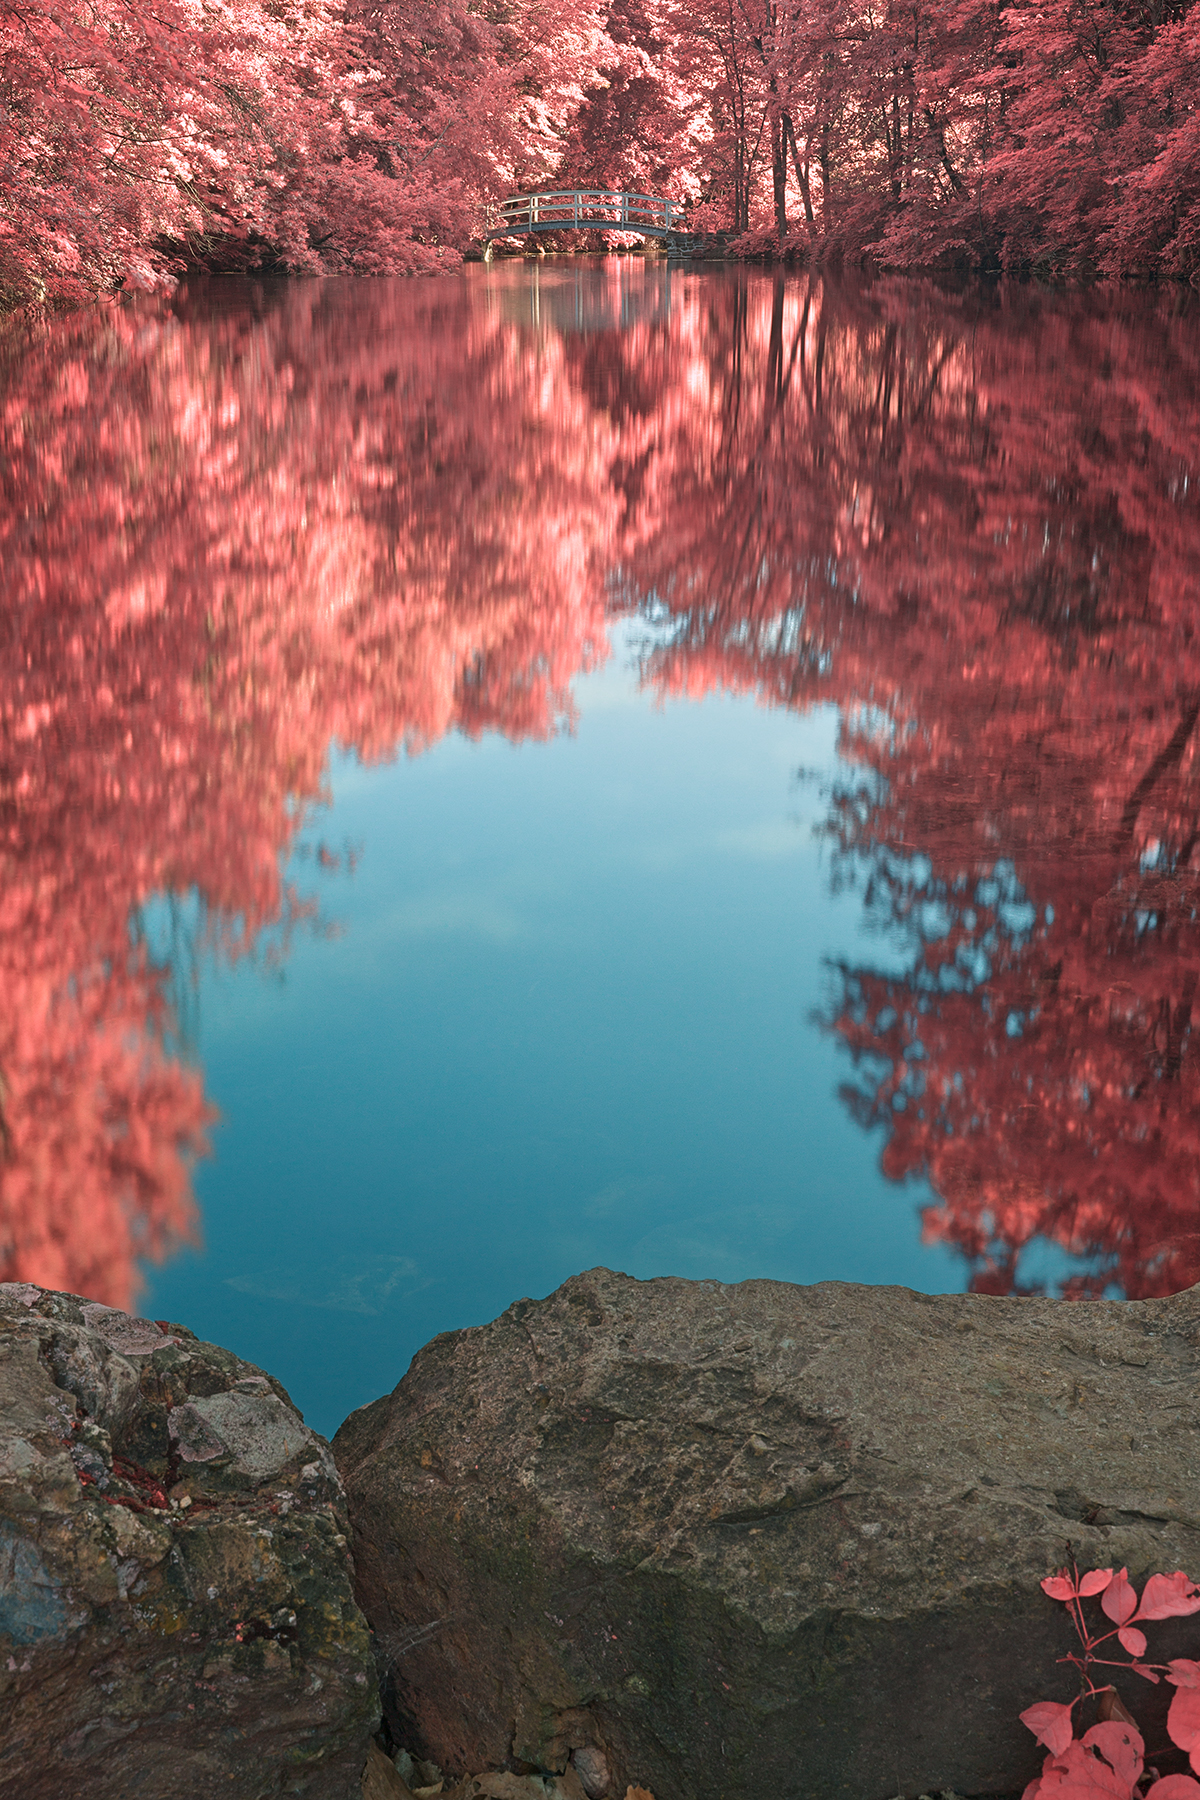 Jean-Drapeau Love Pond - HDR, Abstract, Picturesque, Rock, Reflective, HQ Photo